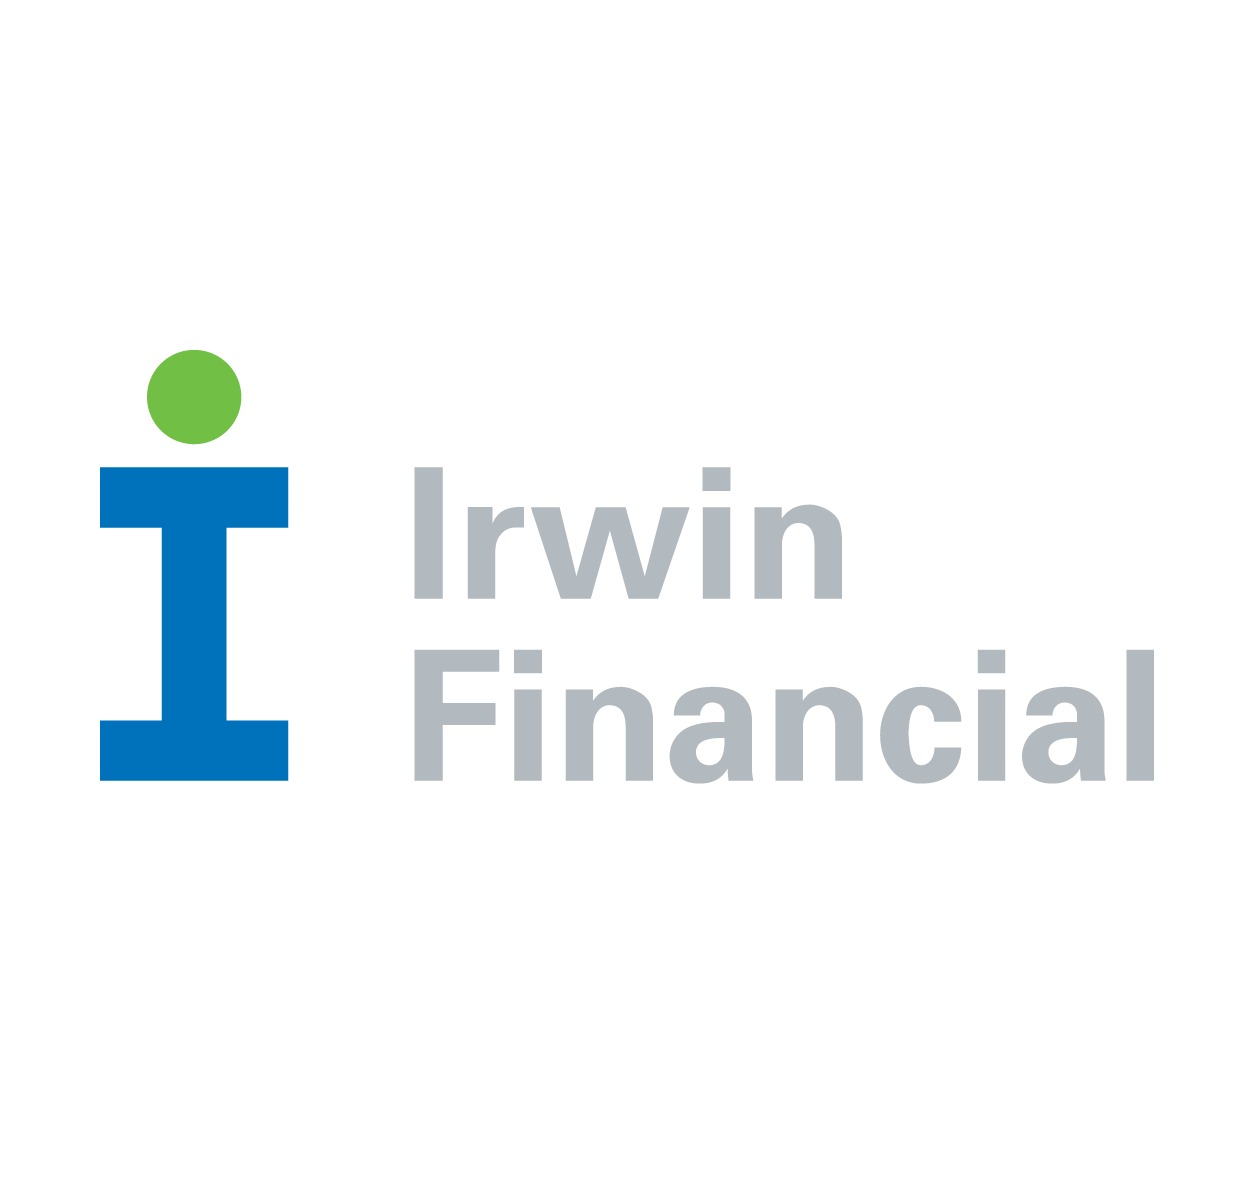 Project Image for Print, Irwin Financial Logo